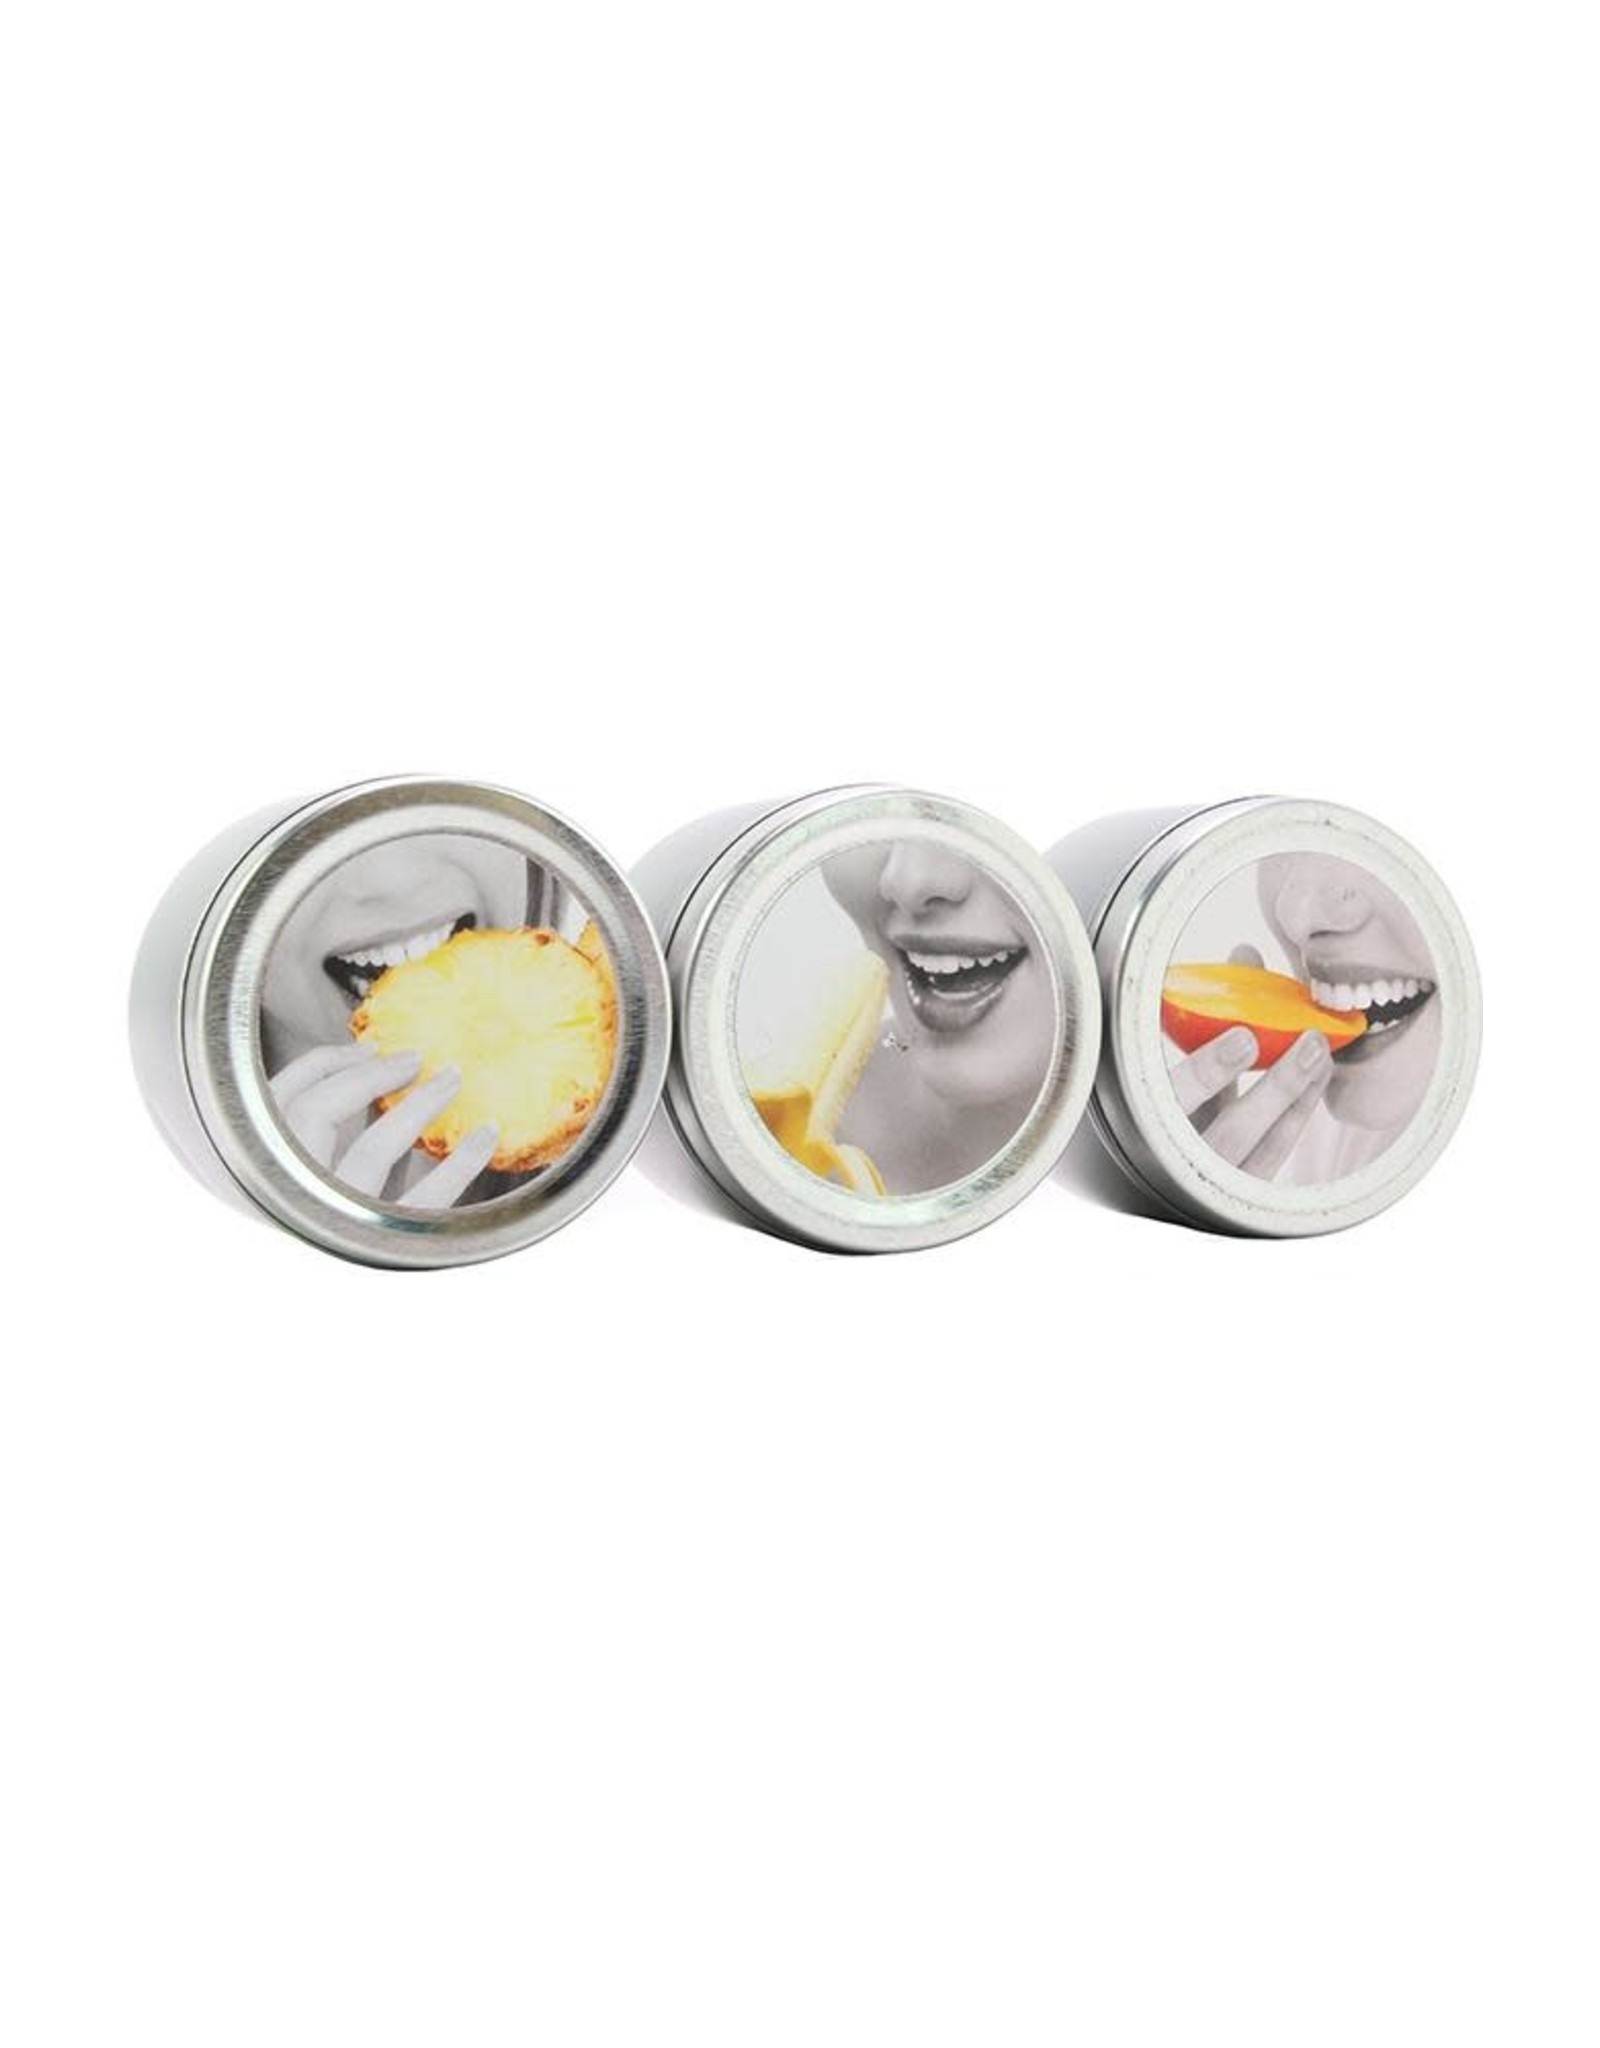 Earthly Body 3-in-1 Candle Trio Gift Bag - Tropical Threesome